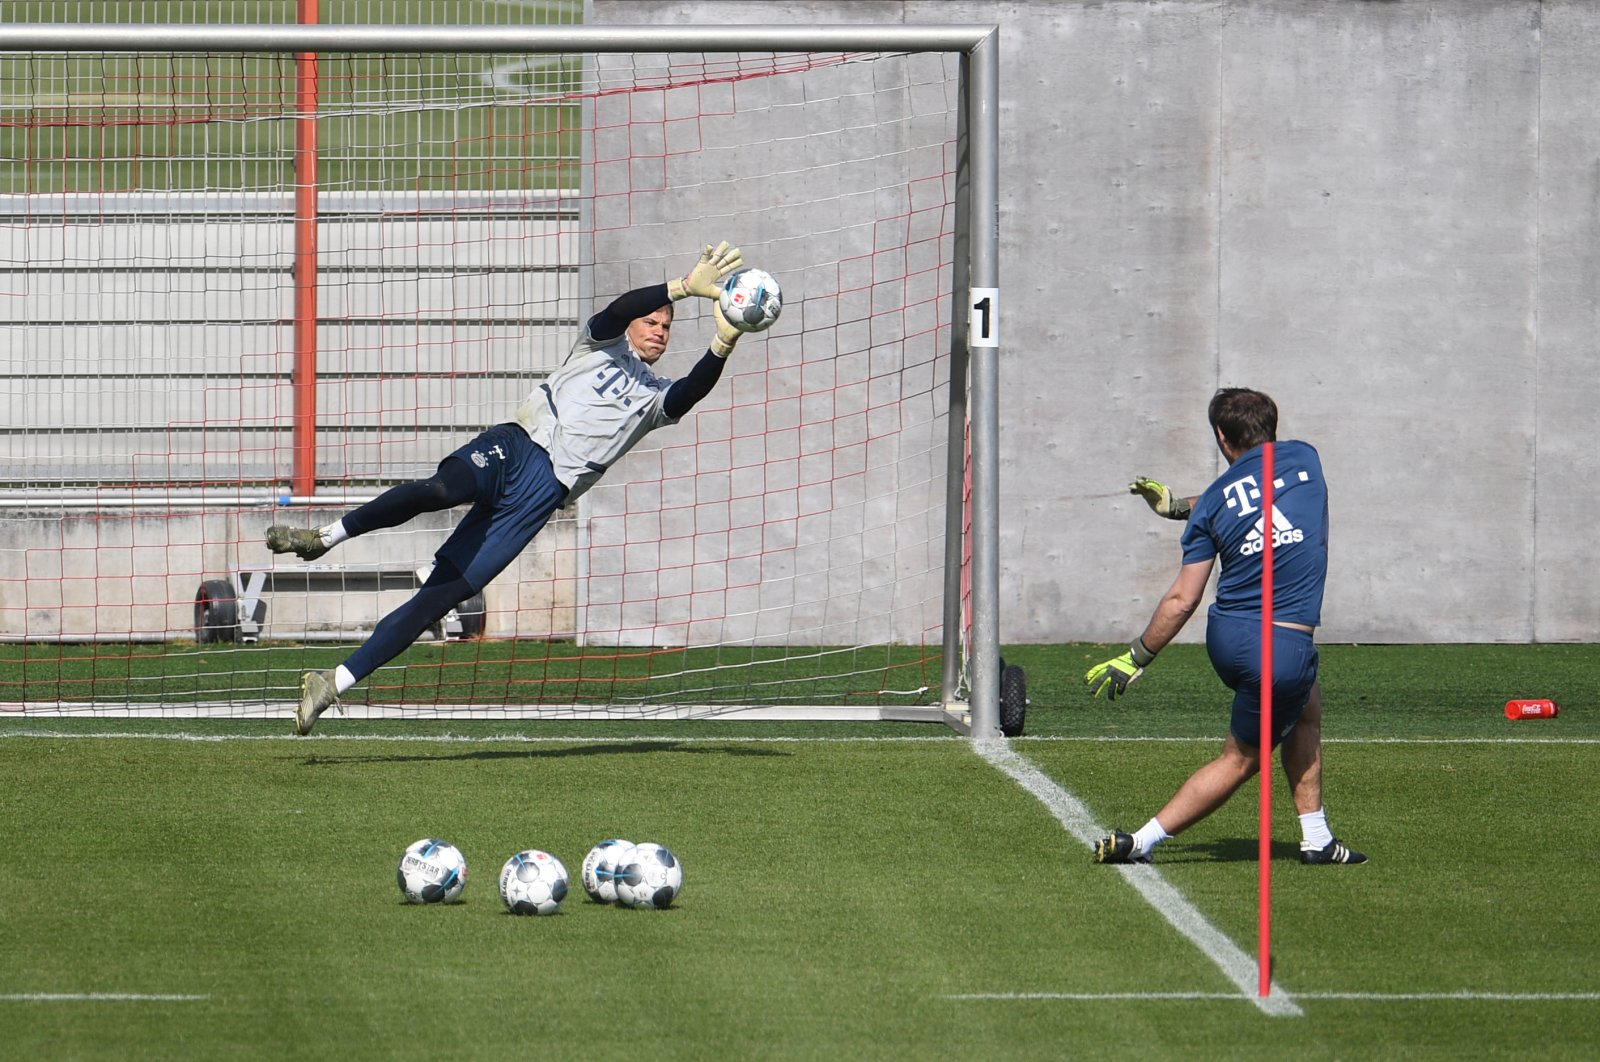 Manuel Neuer (L) during training, in Munich, Germany, Friday, April 24, 2020. (Reuters Photo)